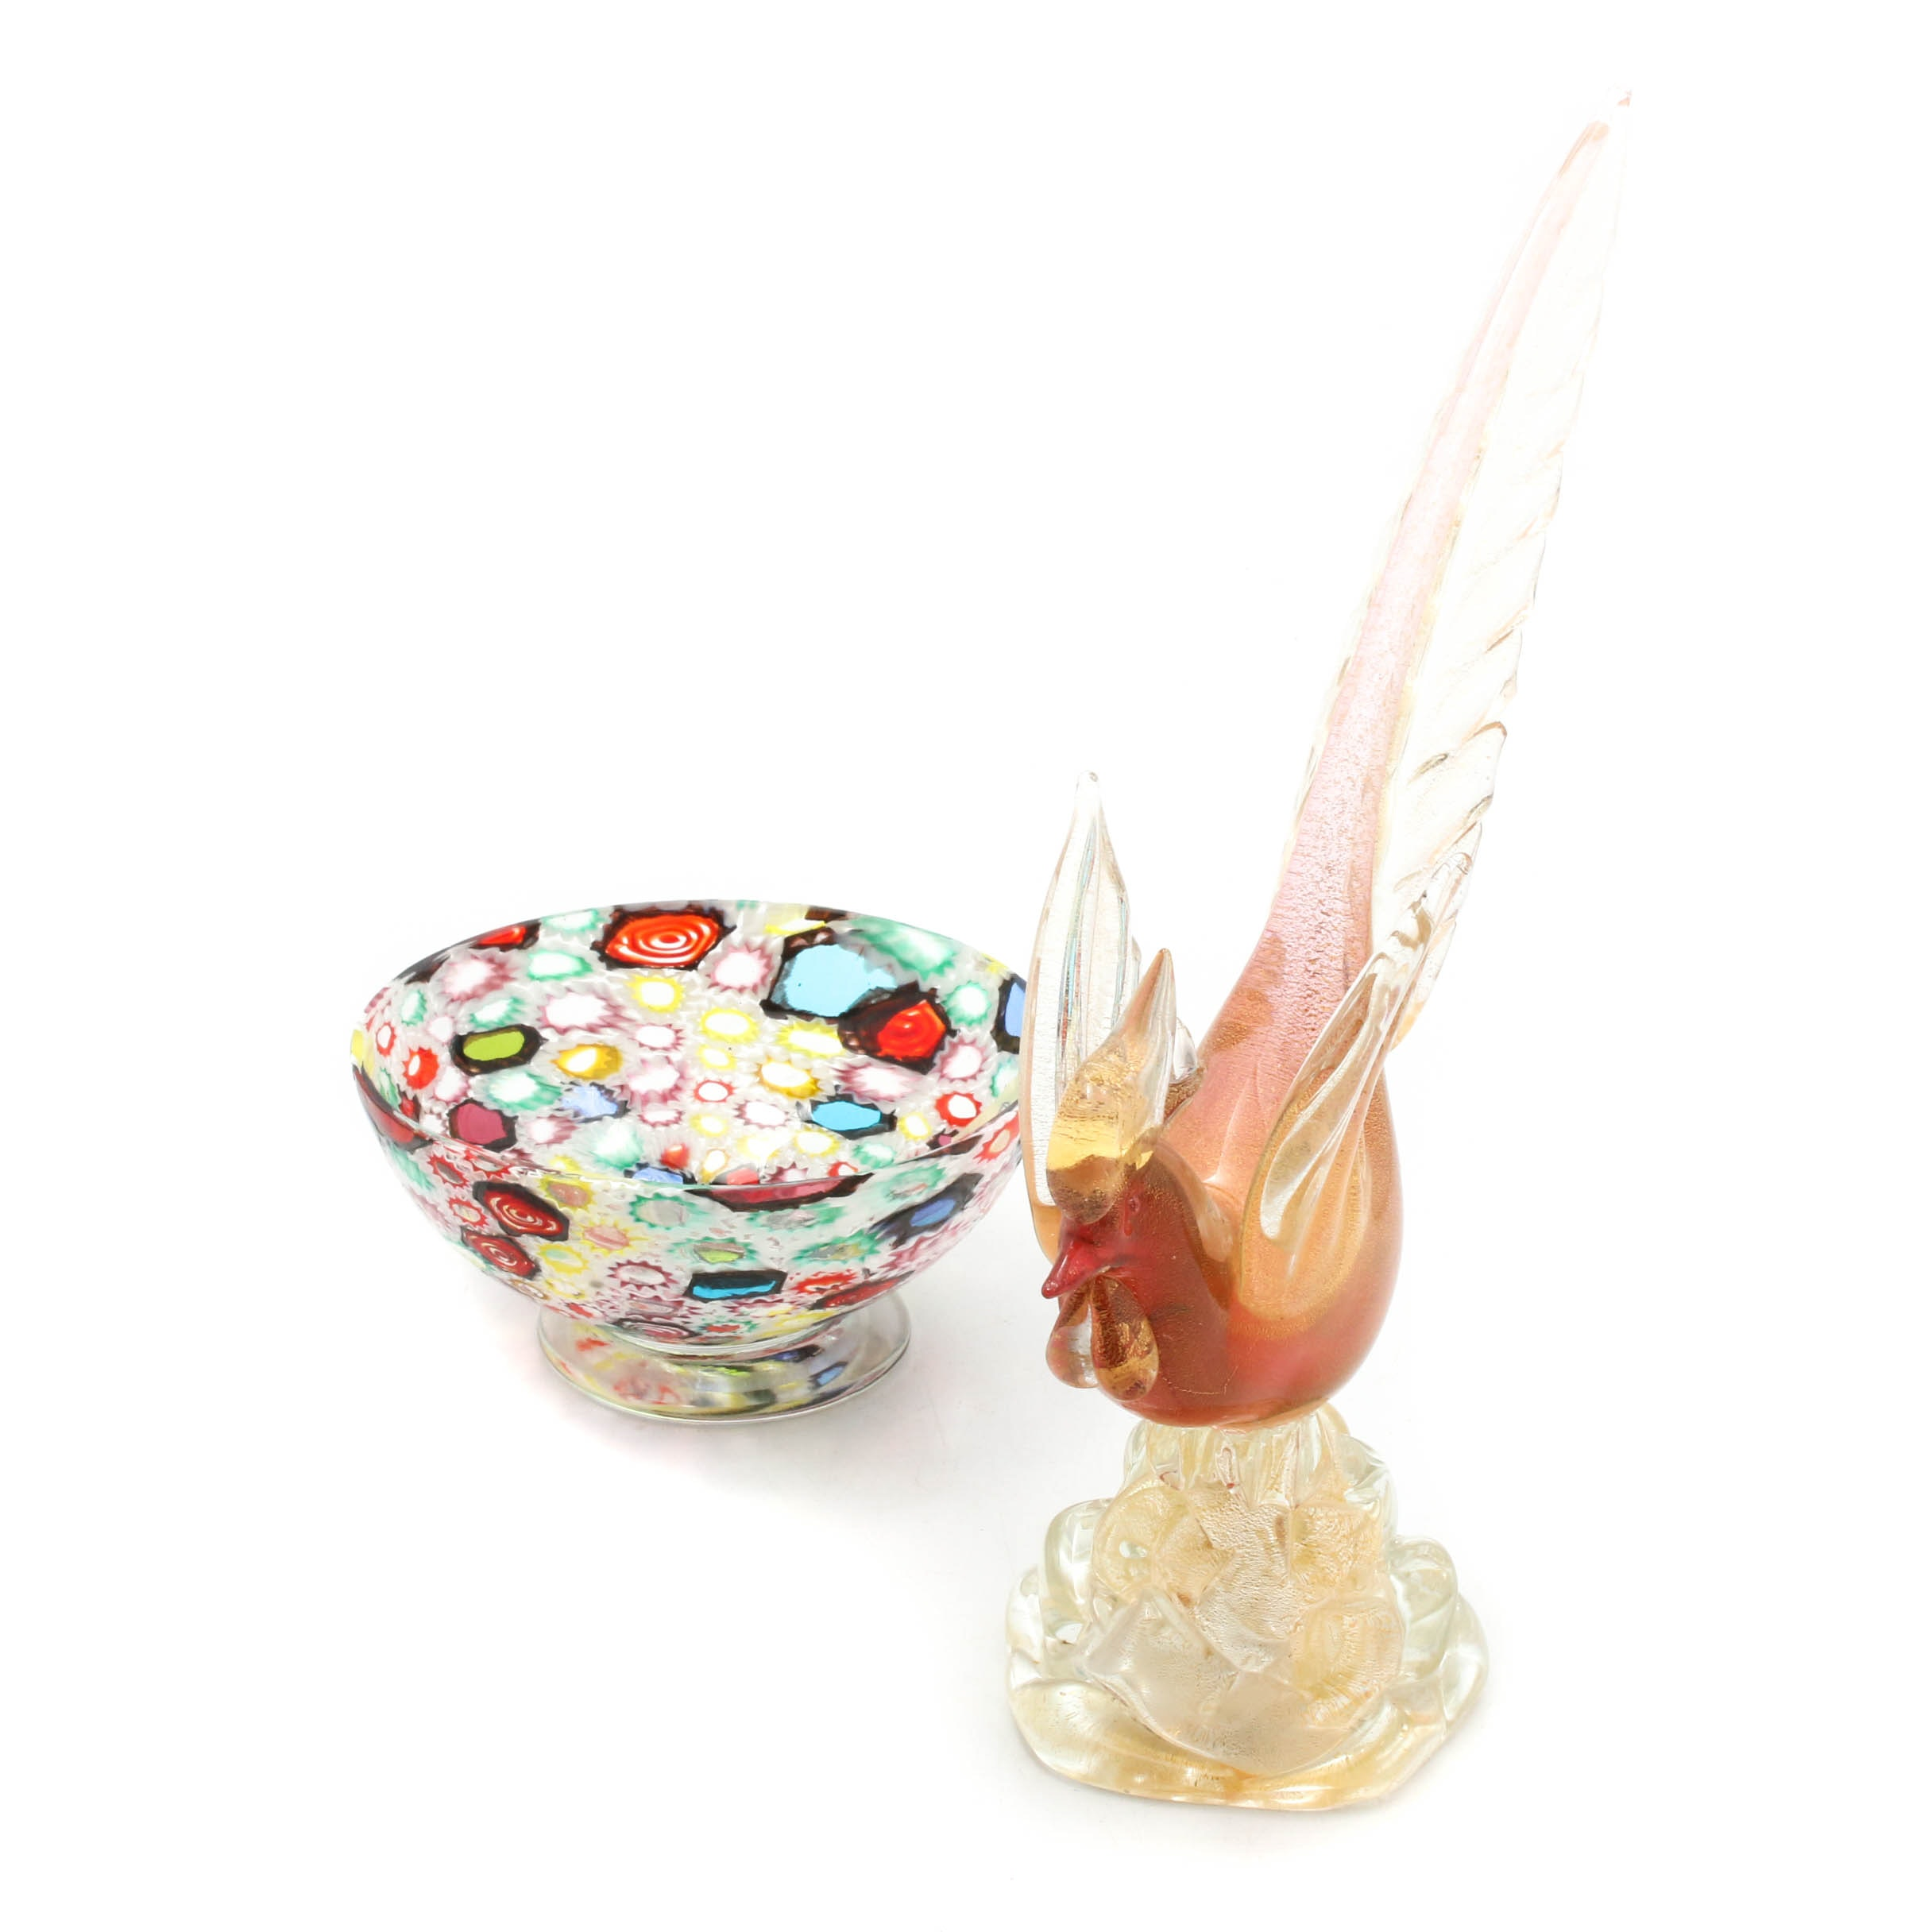 Murano Art Glass Rooster Sculpture with Candy Bowl